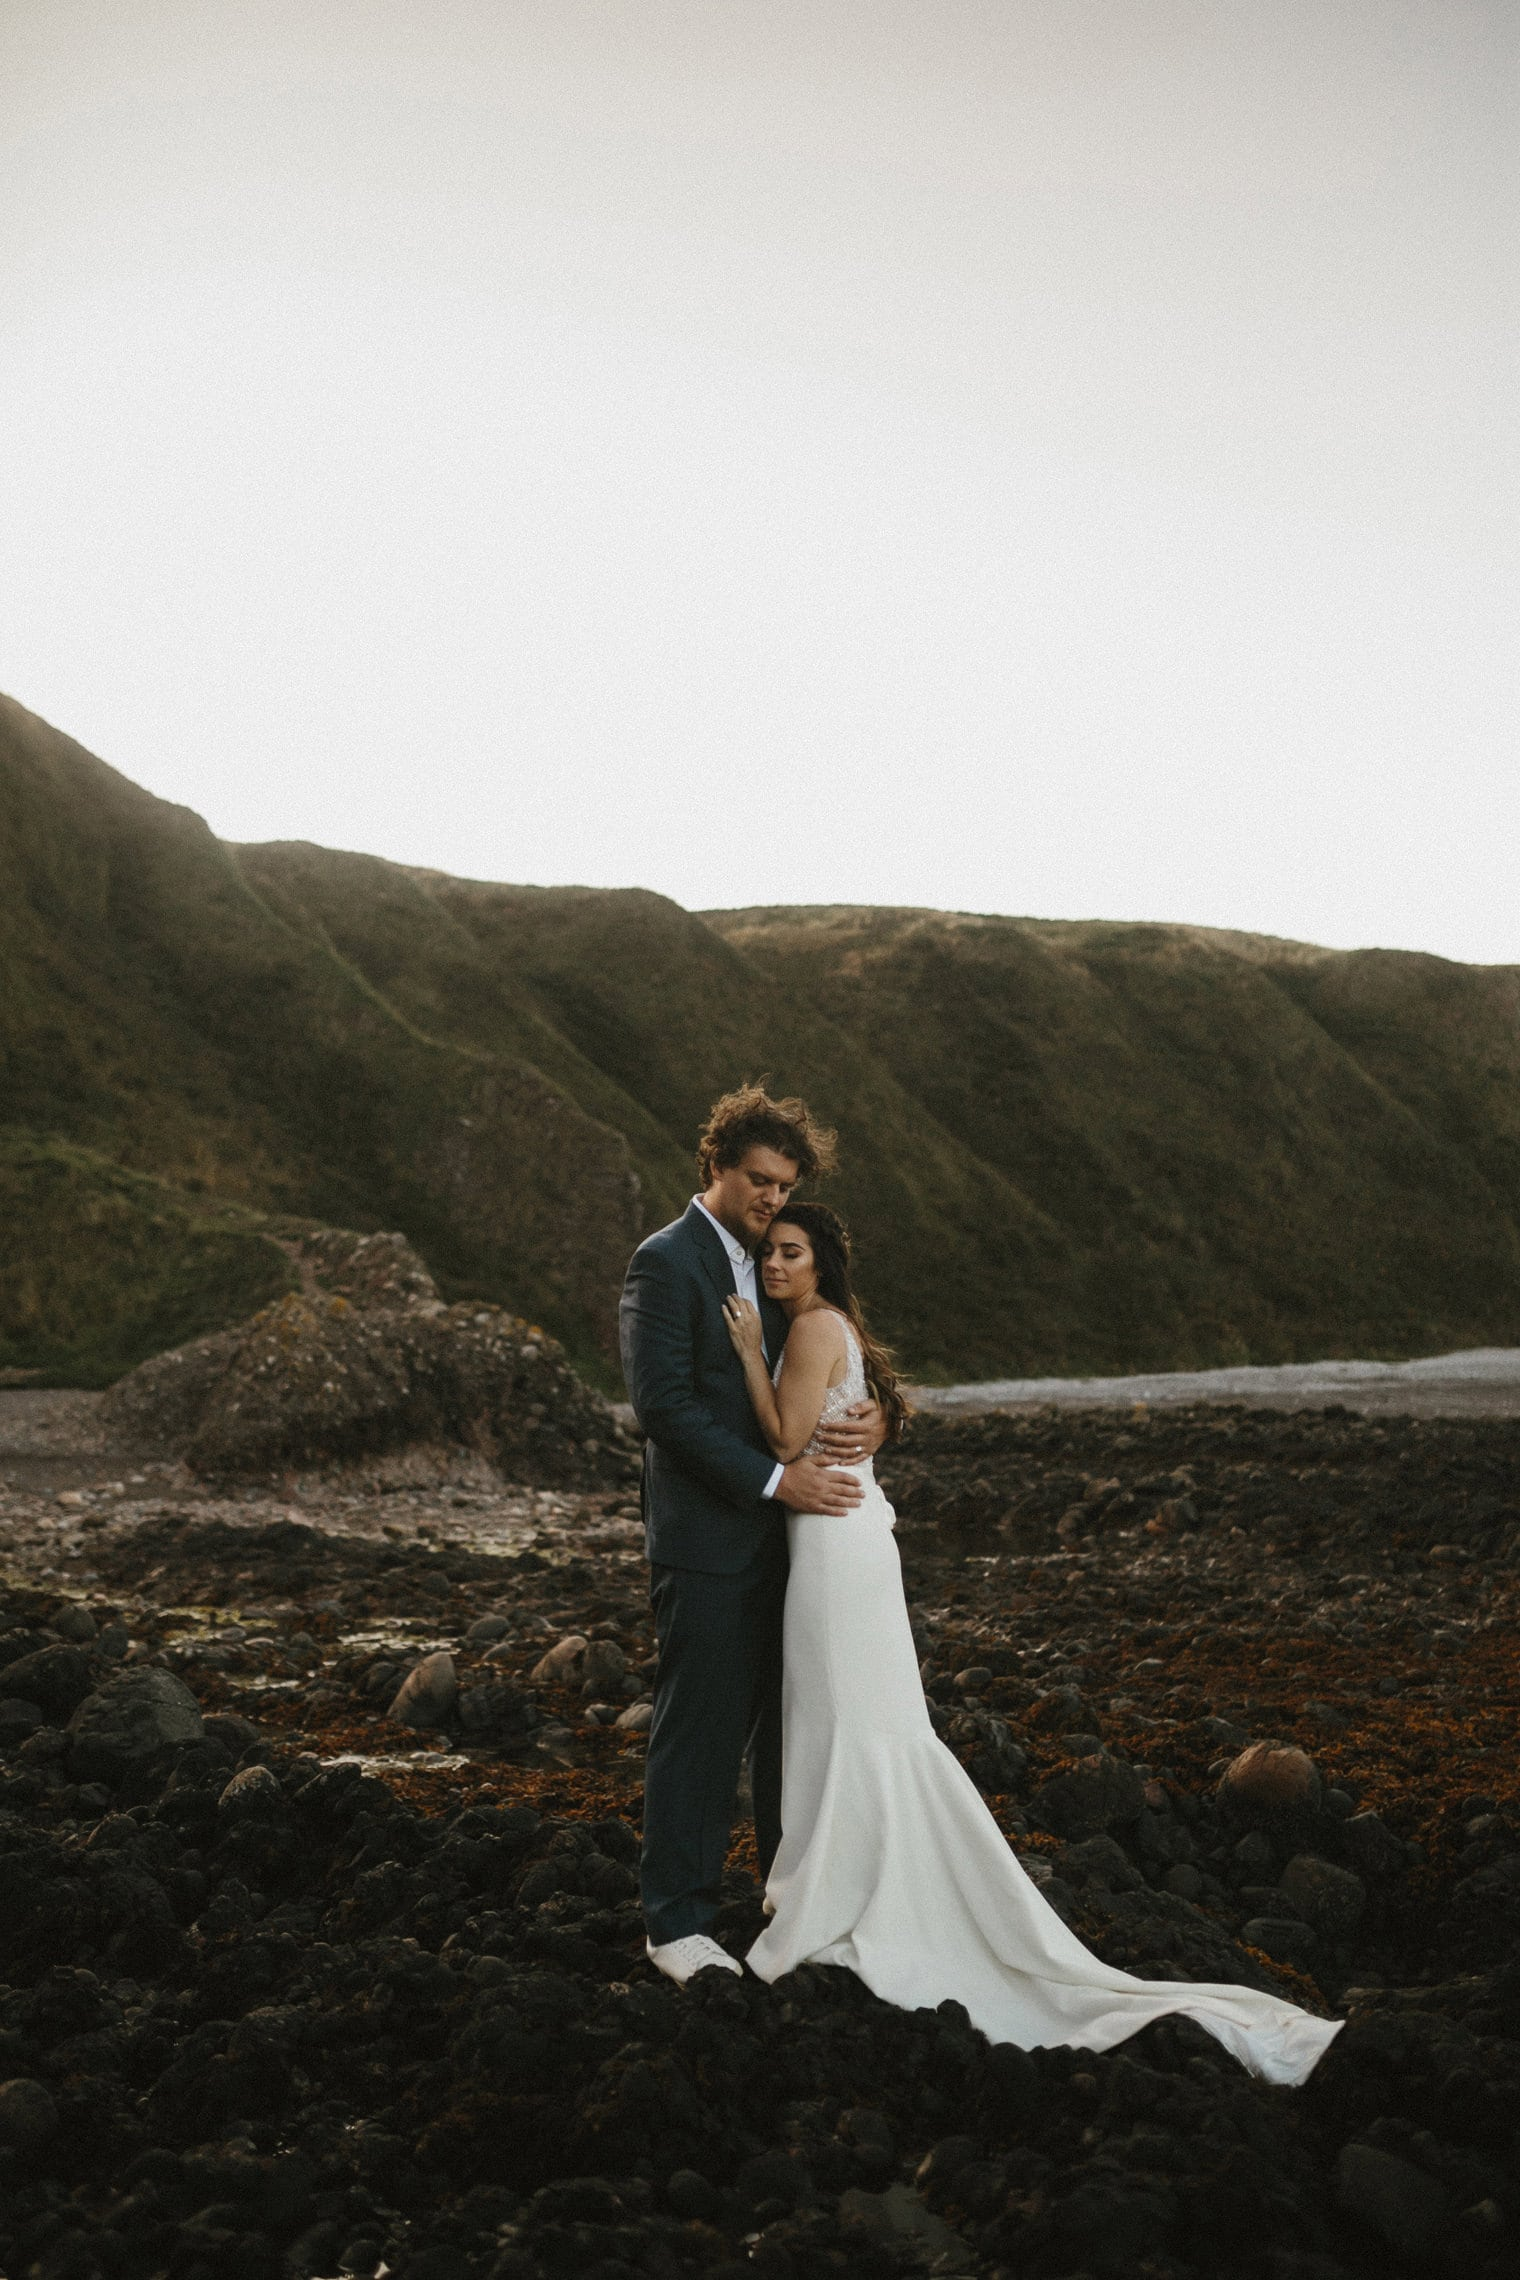 Bride and groom eloping at Dunnottar Castle